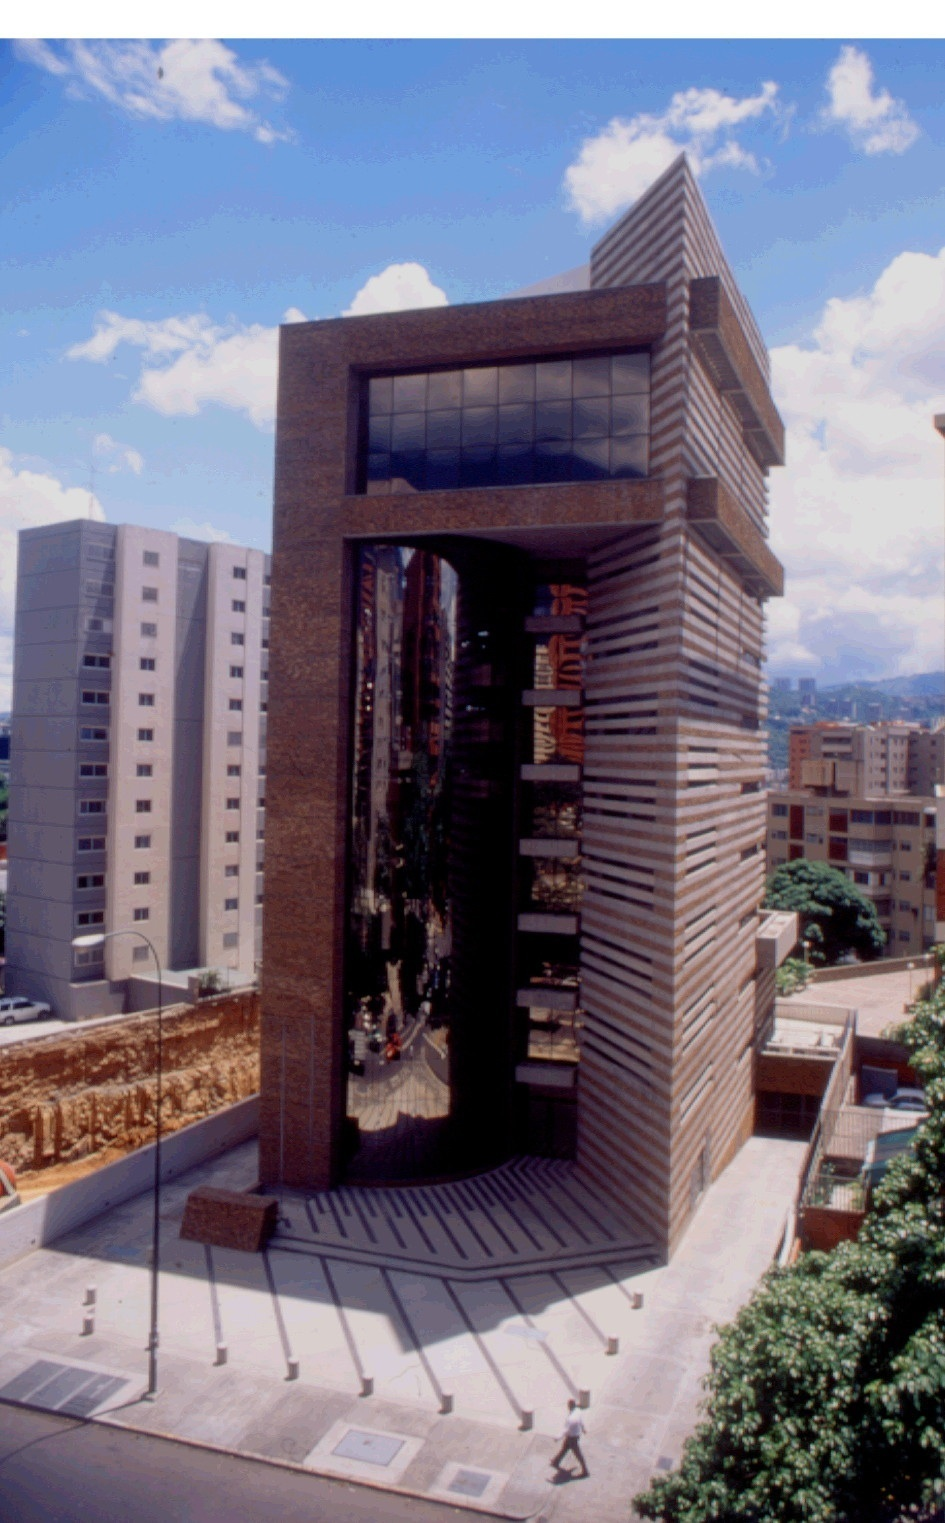 2000 XII Bienal de Arquitectura de Quito   Selected project to participate for Venezuela, Millennuim Office Building